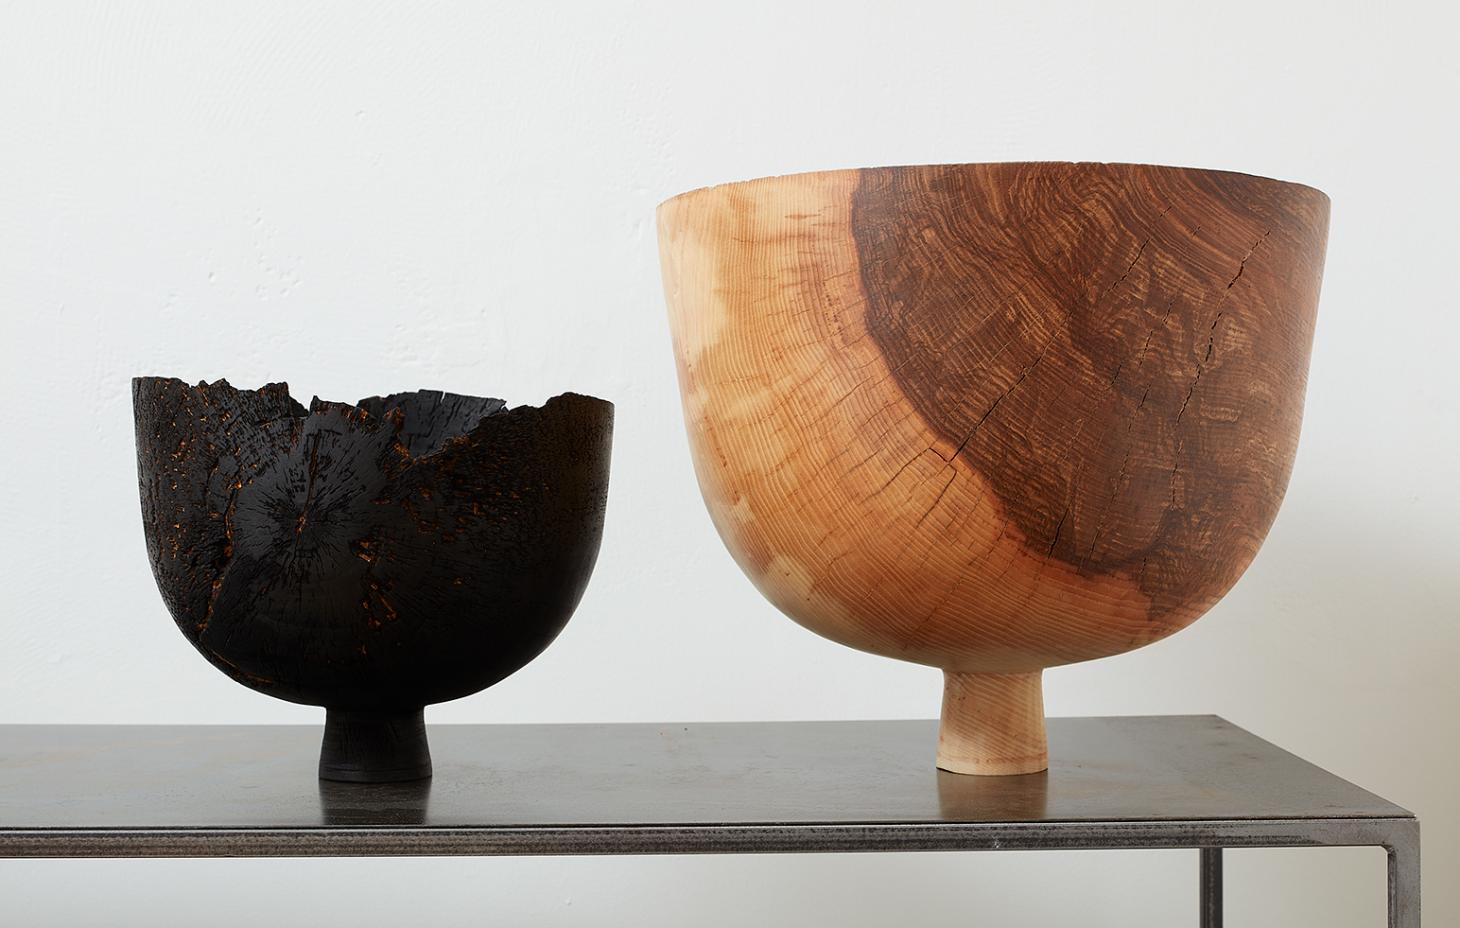 max bainbridge oak vessels at Make gallery